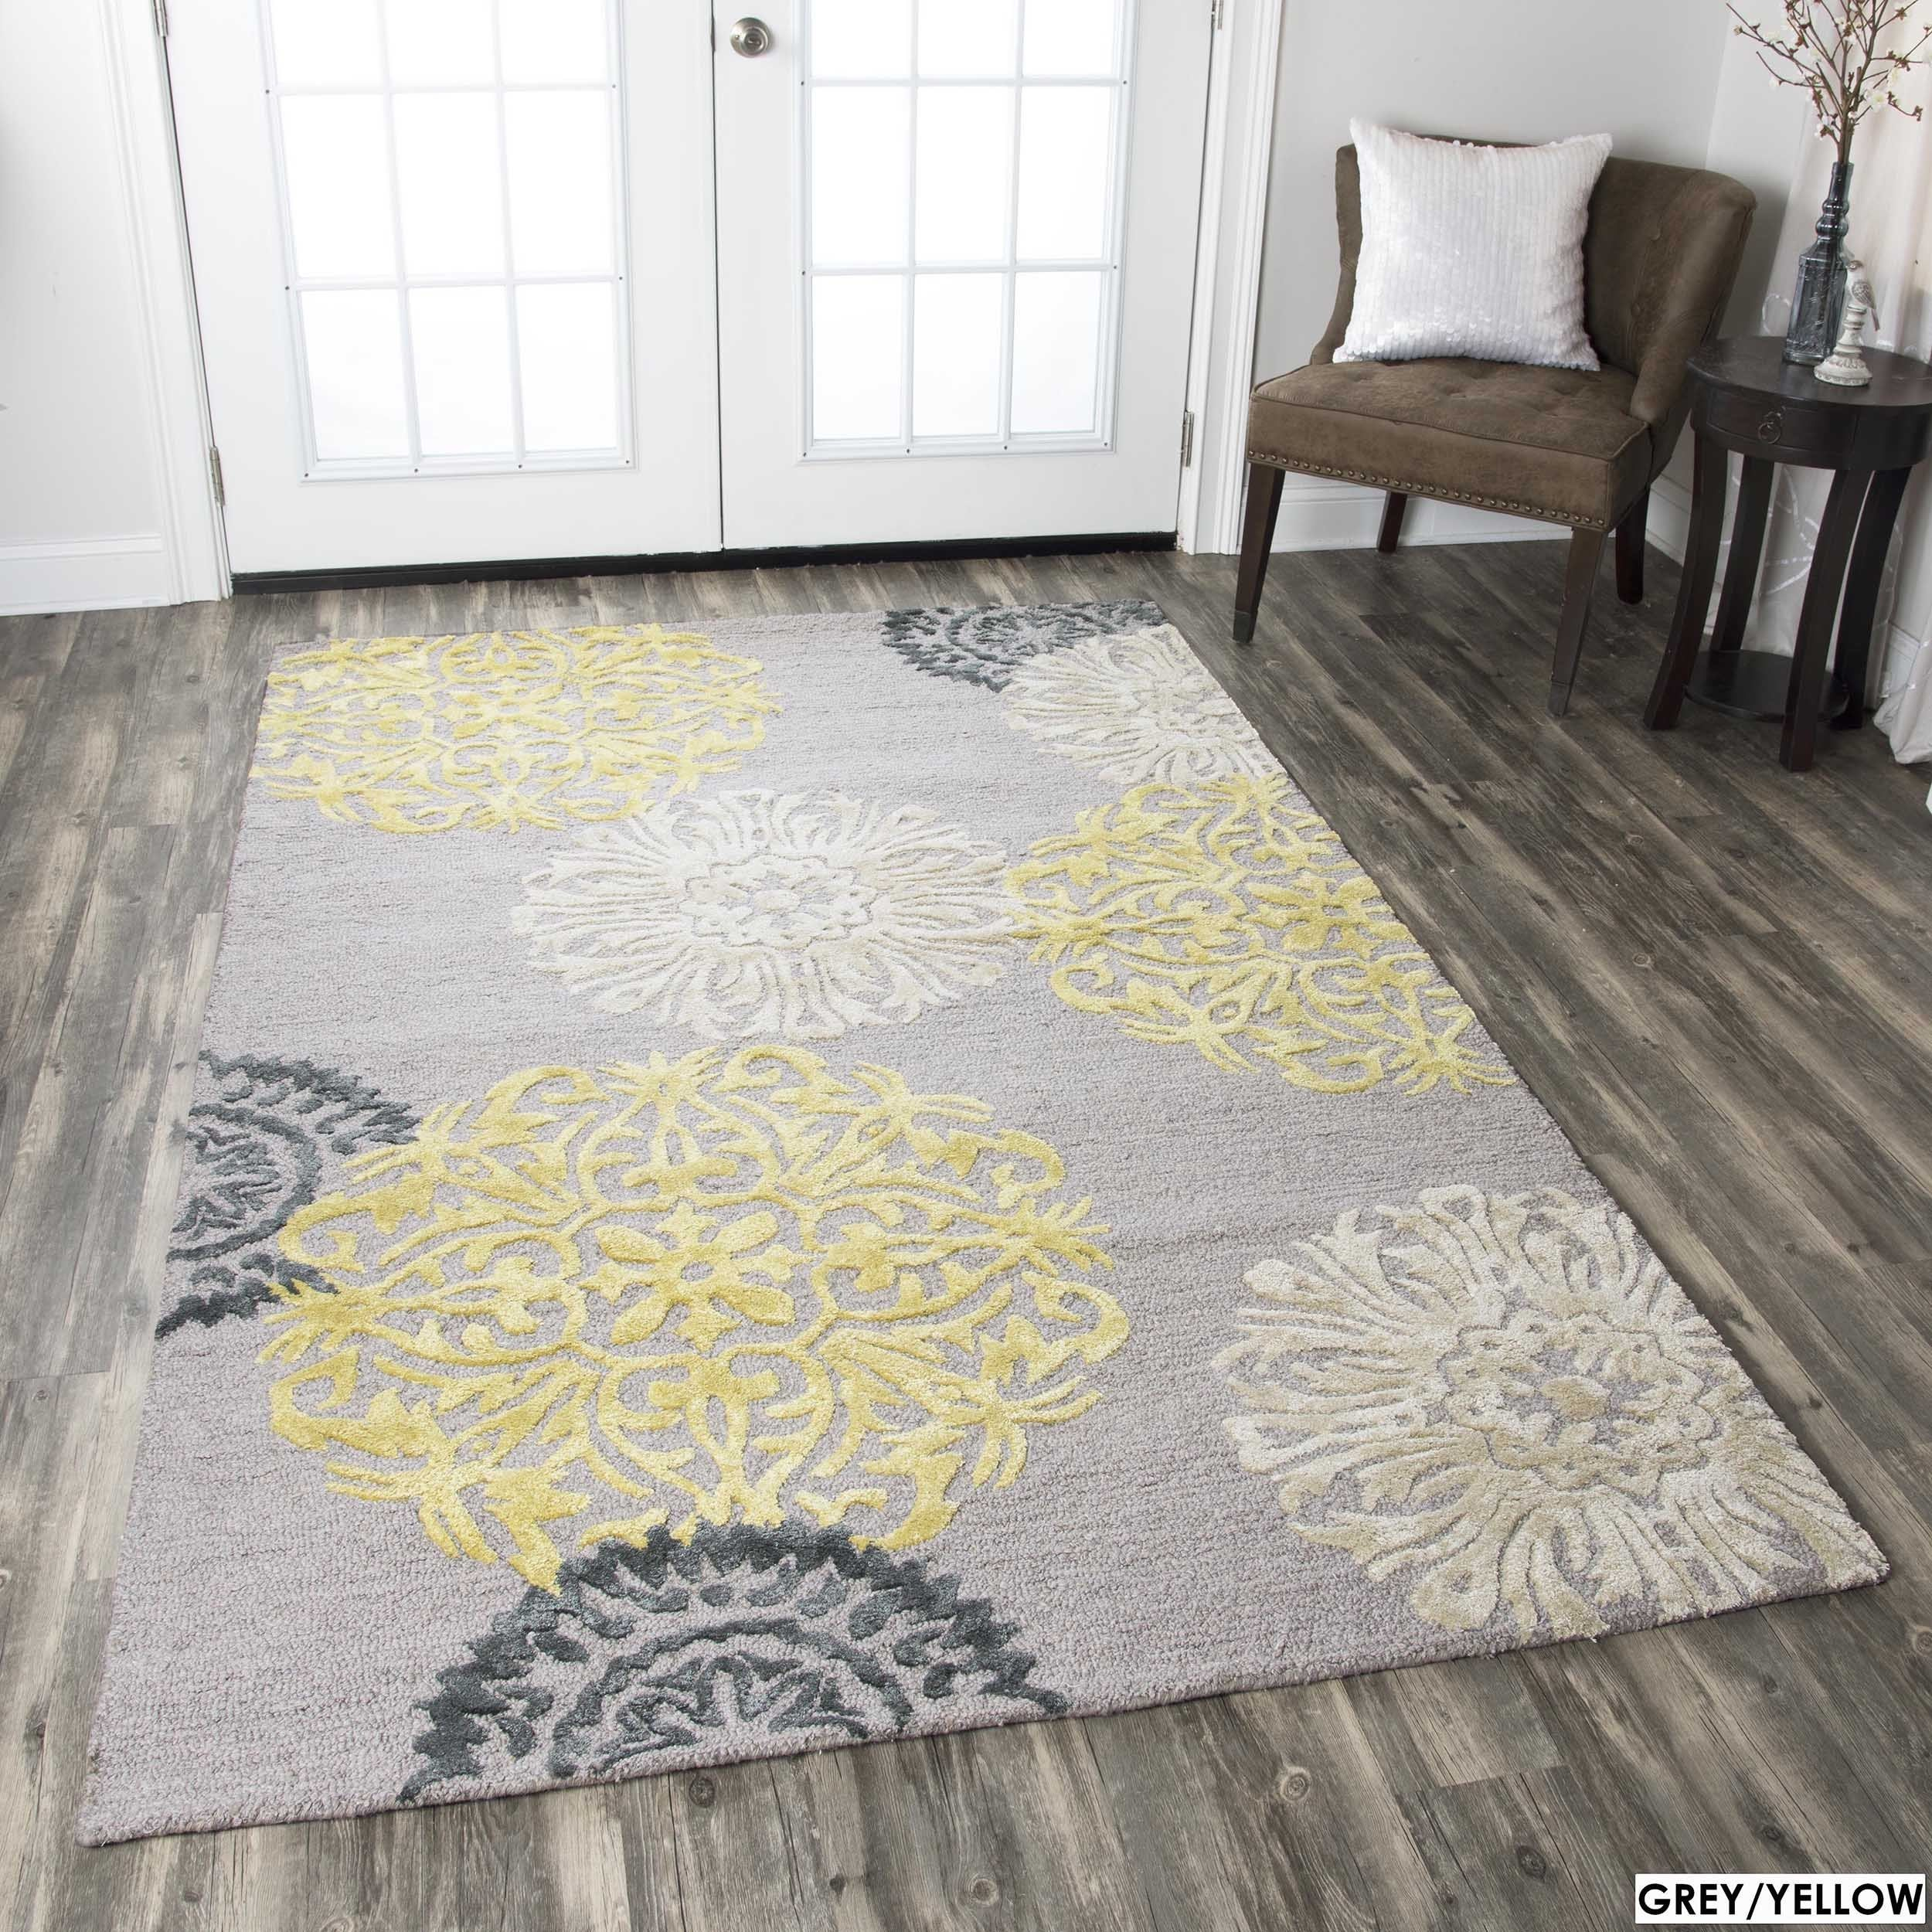 Hand Tufted Floral Wool Grey Navy Yellow Rug 5 X 8 With